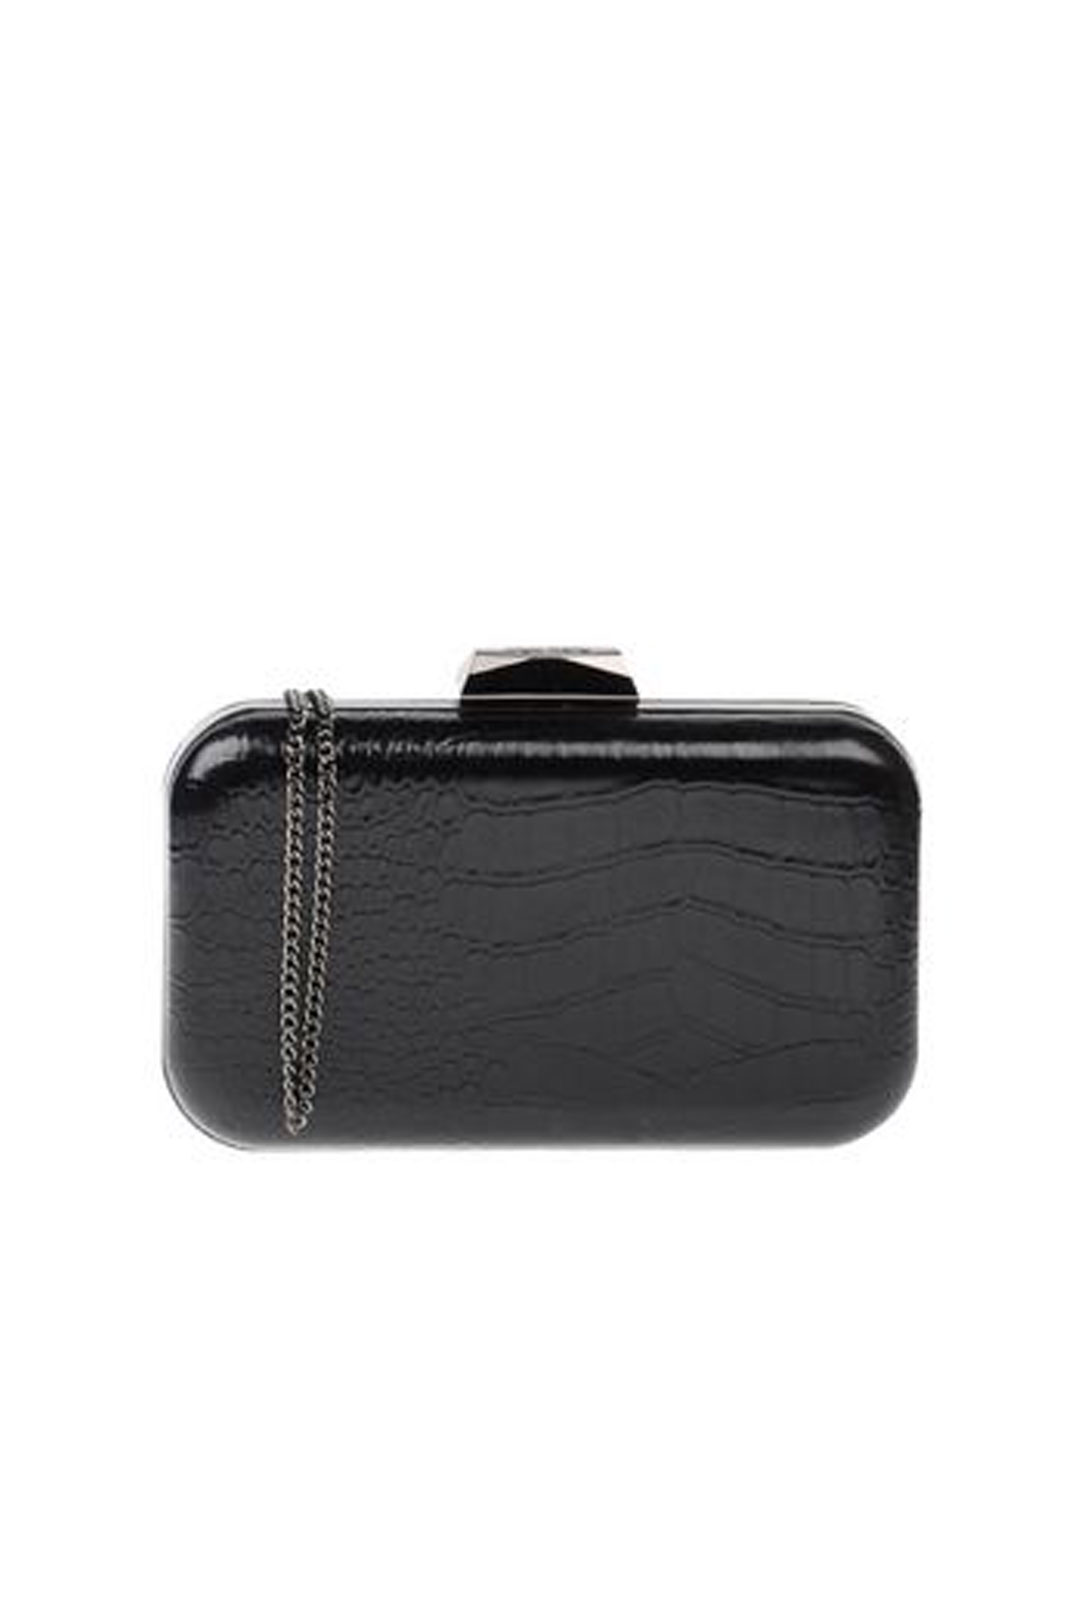 Black Structured Clutch / VILNIUS